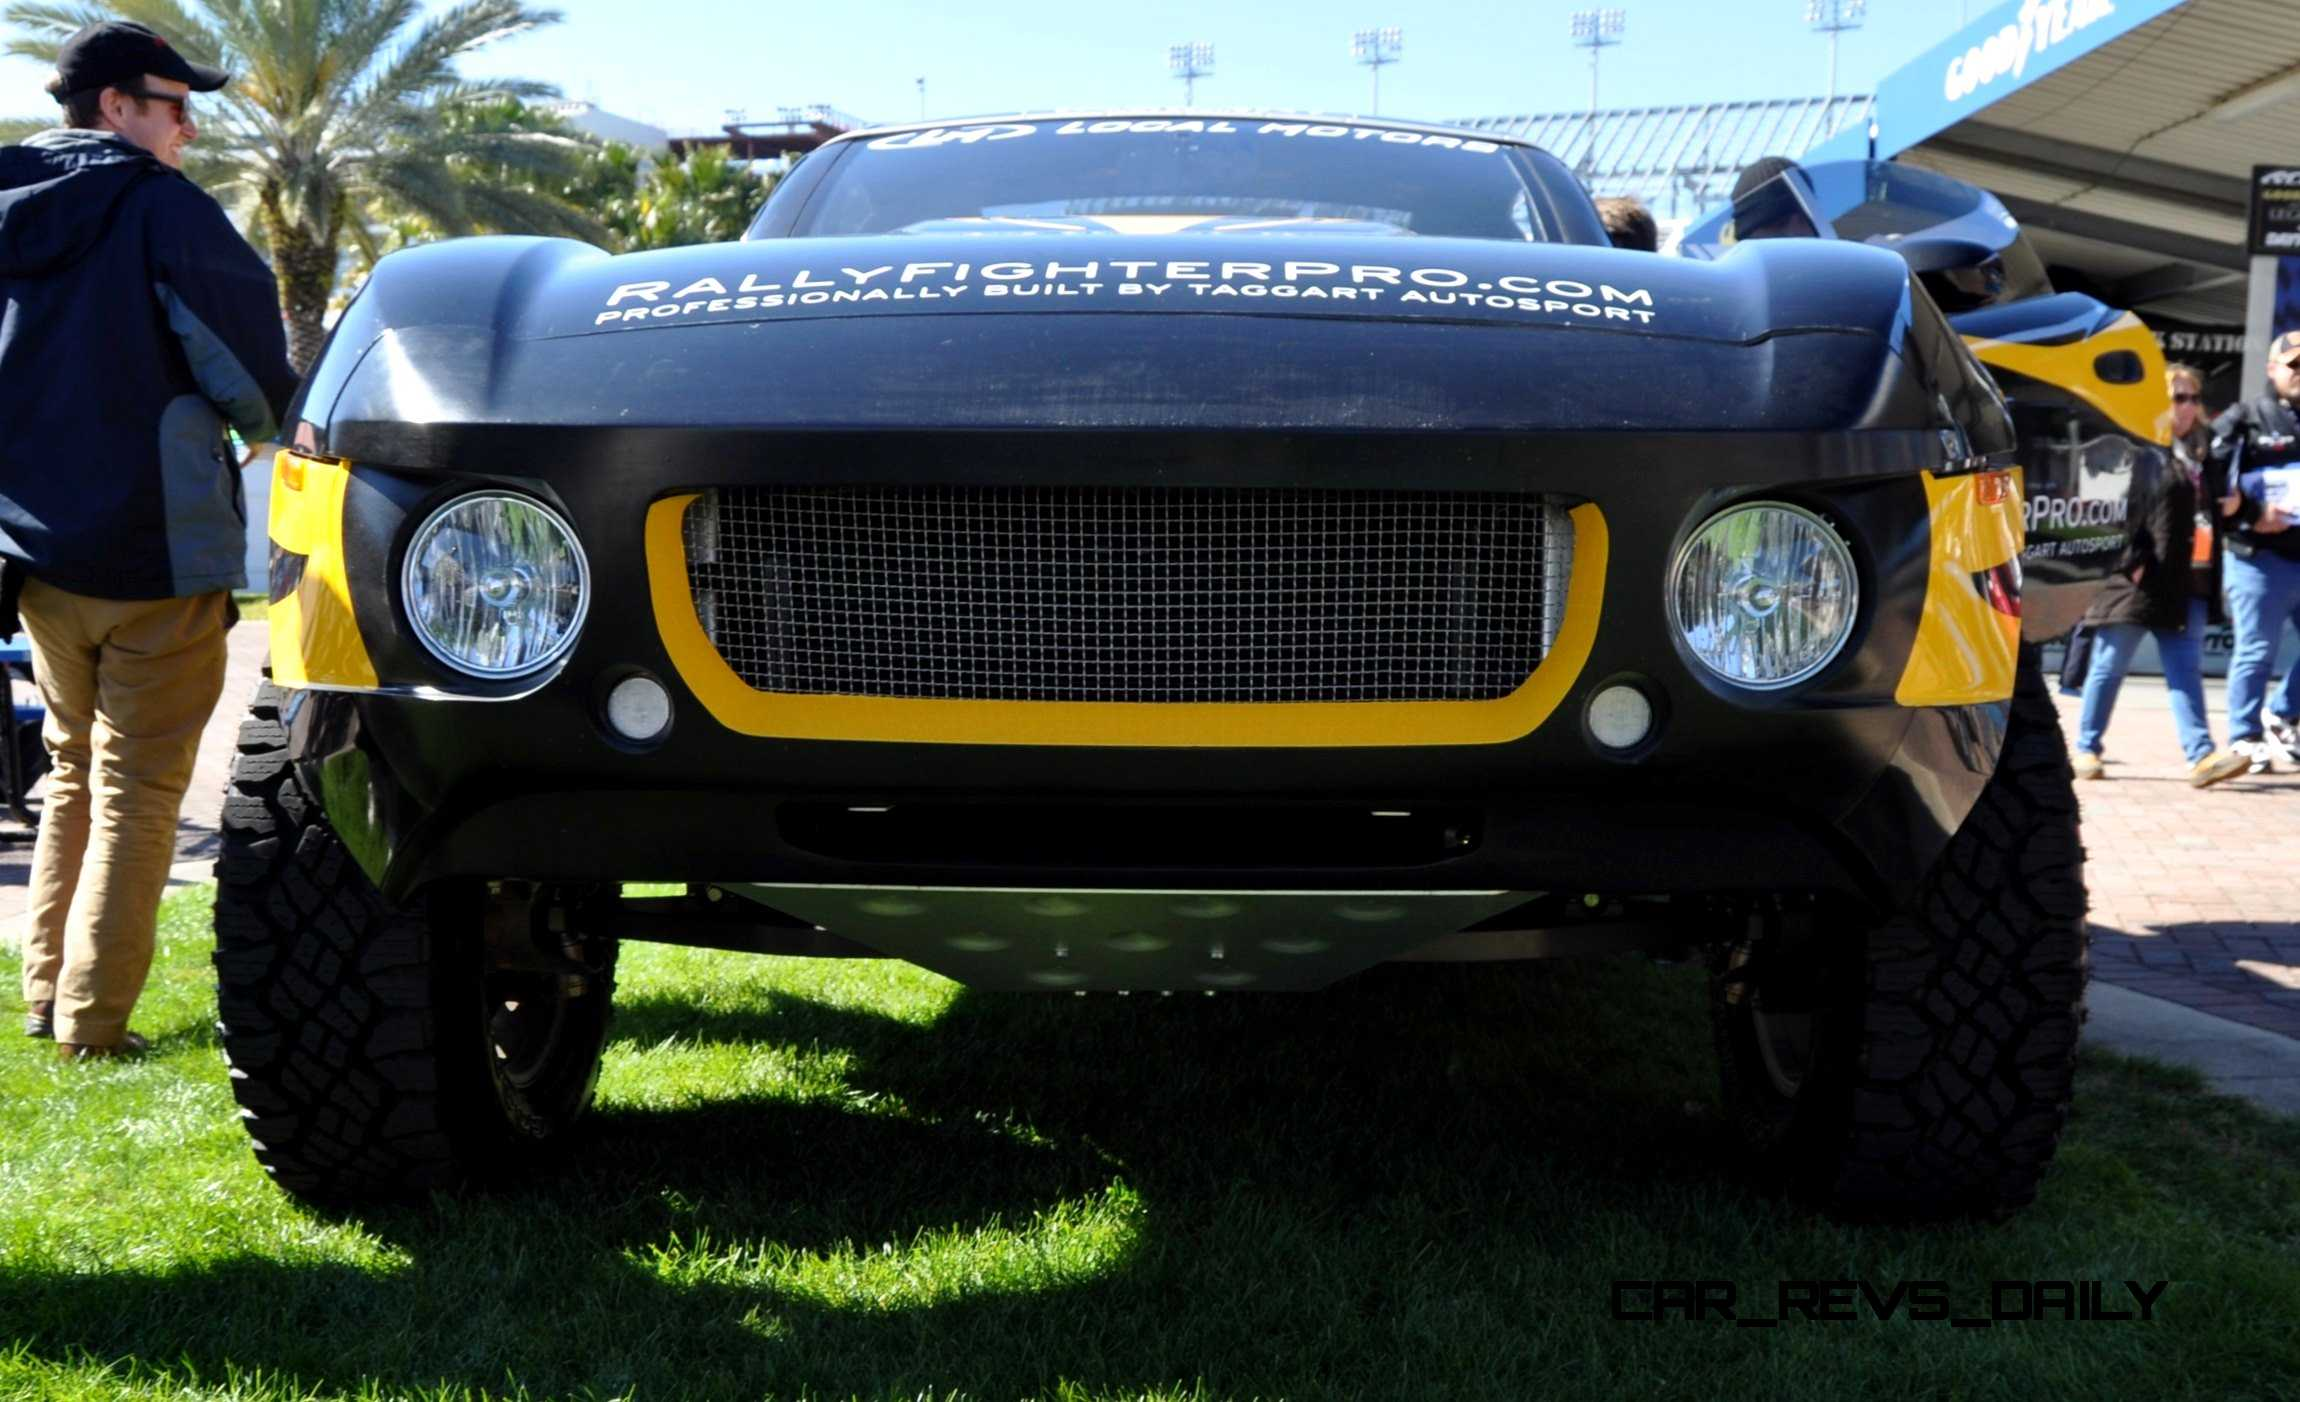 2015 Rally Fighter PRO By Taggart Autosport